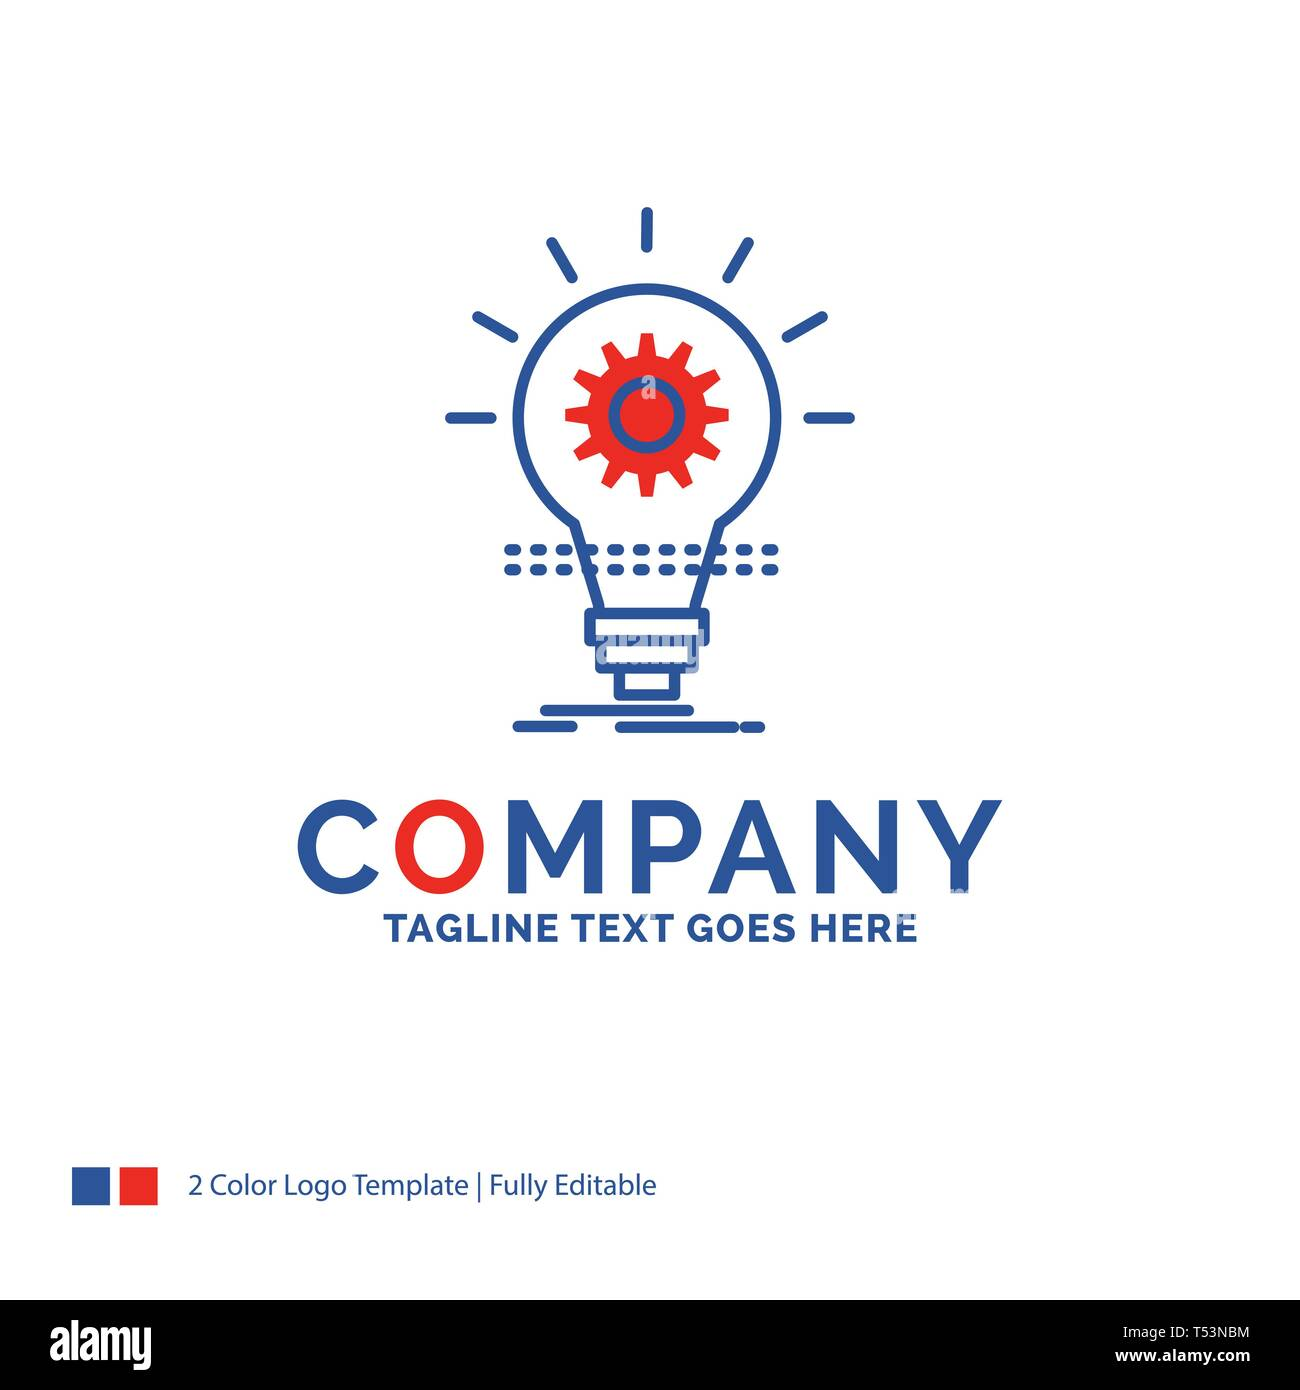 Company Name Logo Design For Bulb Develop Idea Innovation Light Blue And Red Brand Name Design With Place For Tagline Abstract Creative Logo Tem Stock Vector Image Art Alamy